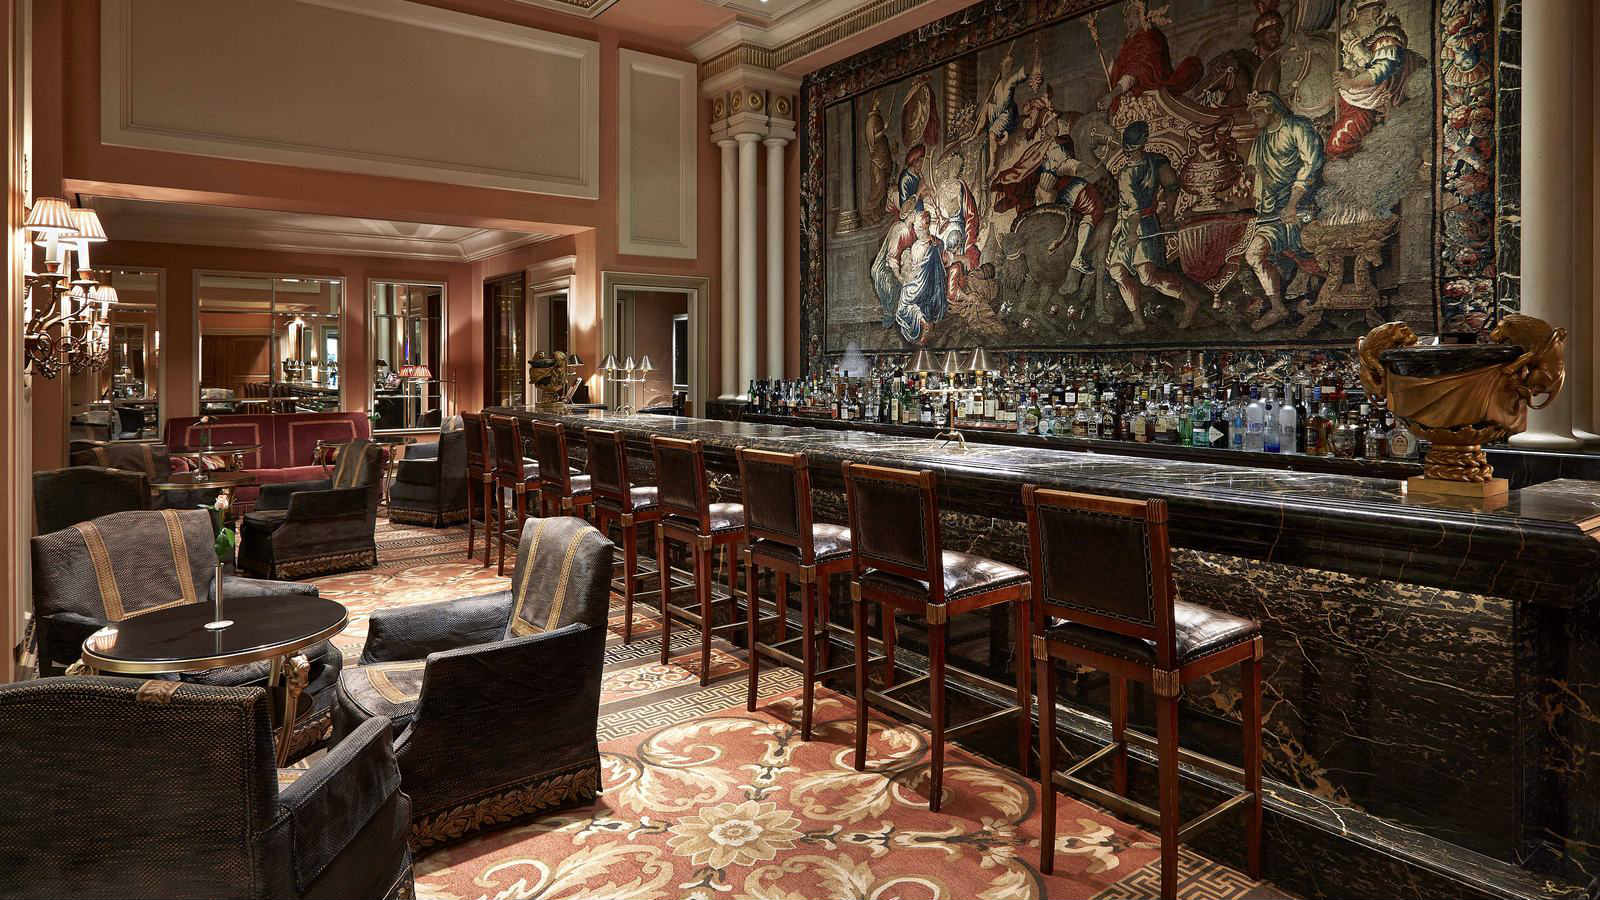 The famous Alexander's bar was voted as the Best Hotel Bar in the world by Forbes magazine, at the Hotel Grande Bretagne in Athens